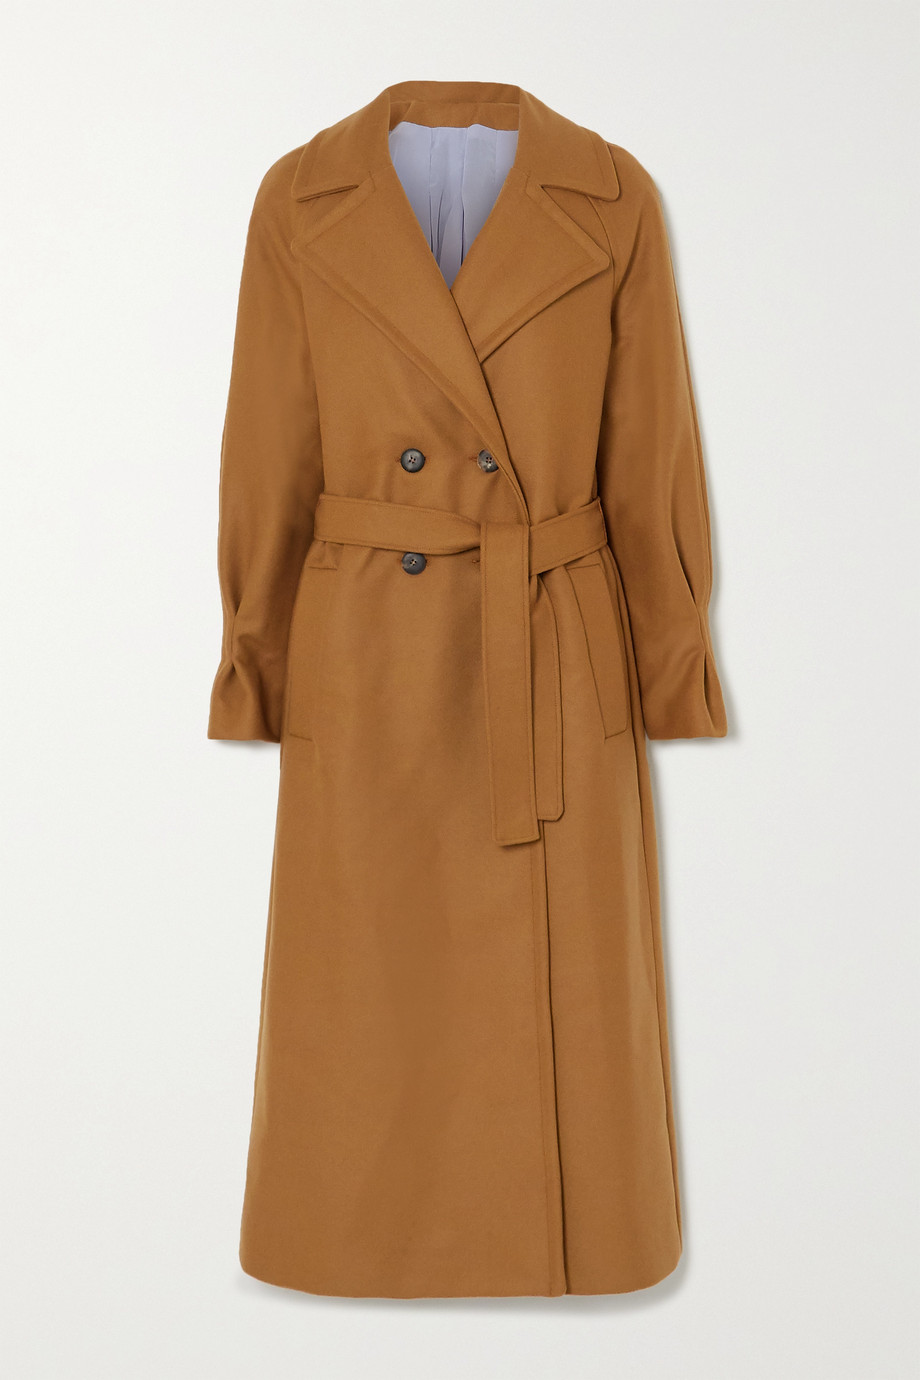 YOOX NET-A-PORTER FOR THE PRINCE'S FOUNDATION Belted double-breasted merino wool and cashmere-blend coat